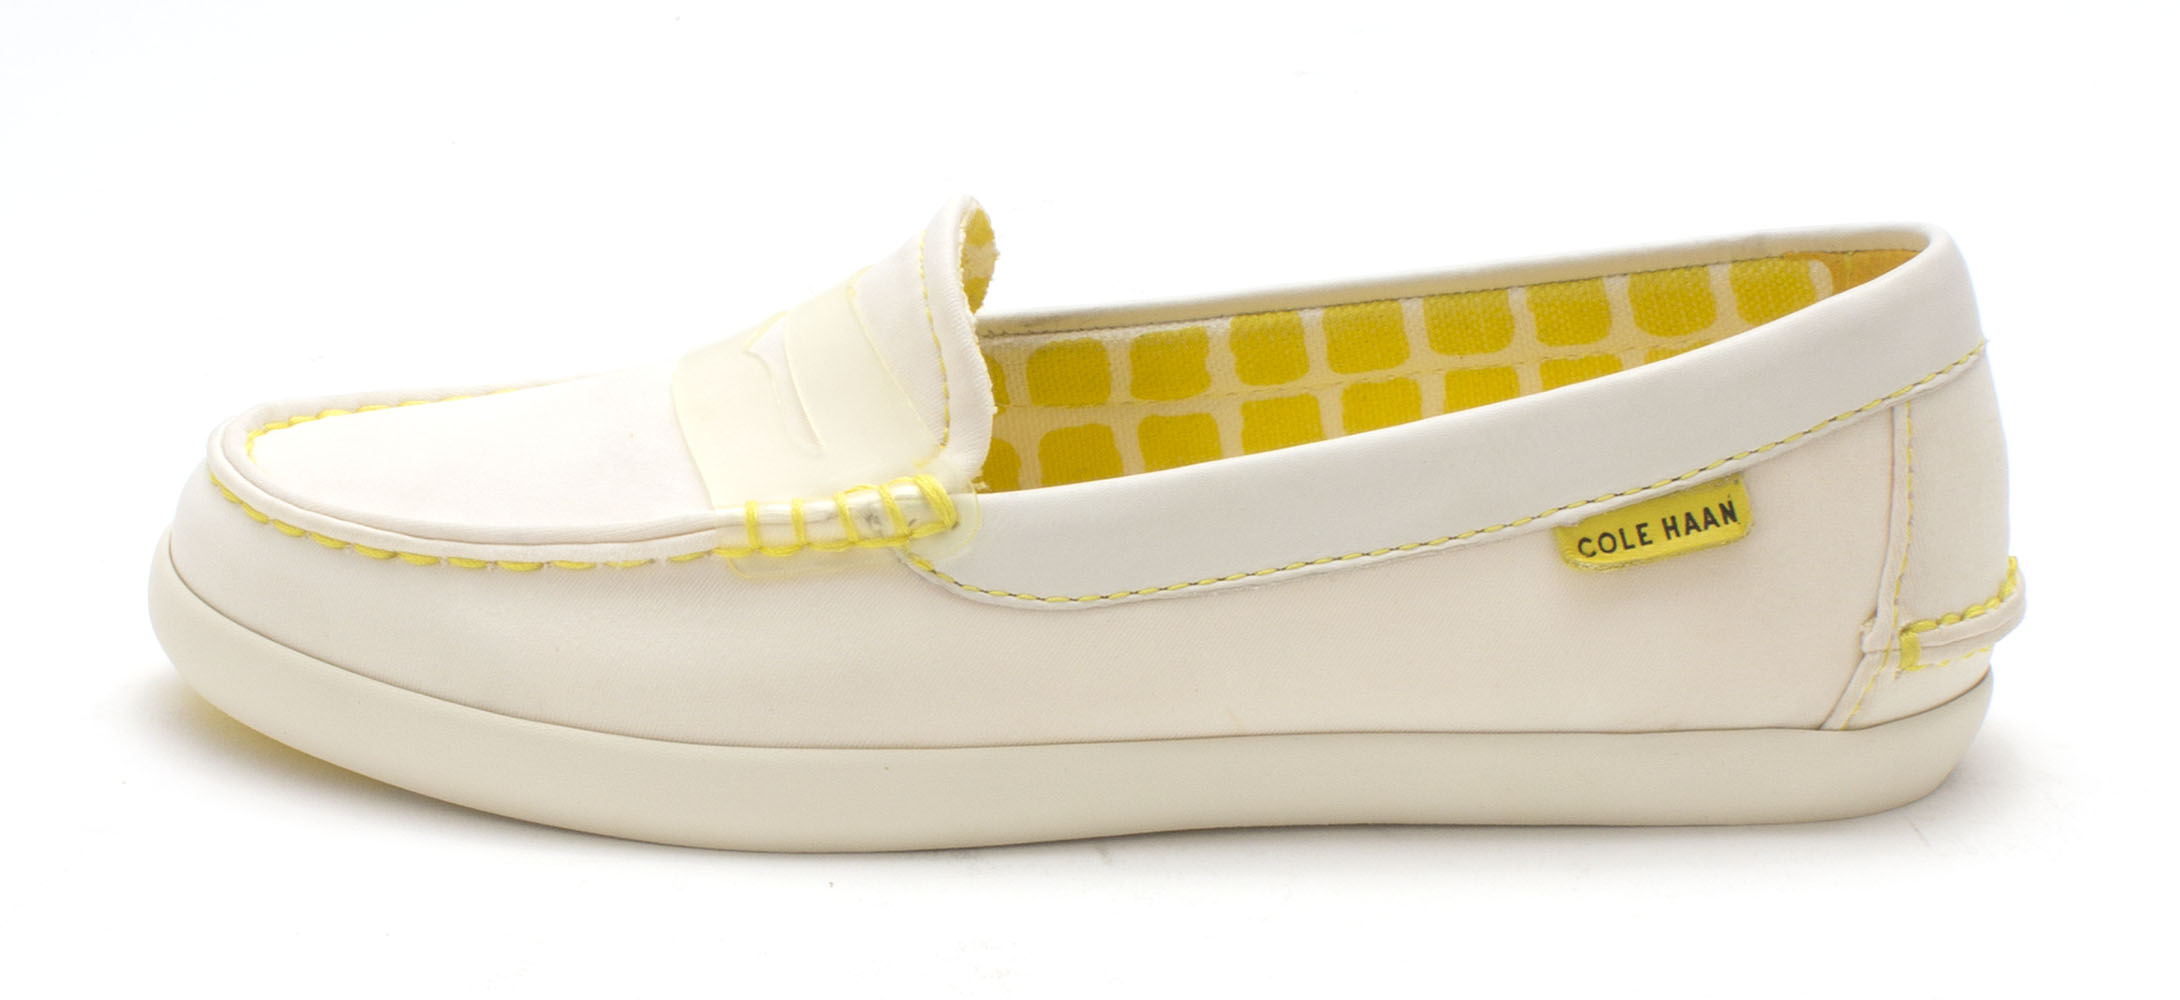 Cole Haan Womens D43787 Closed Toe Loafers, Optic White/Clear, Size 6.0